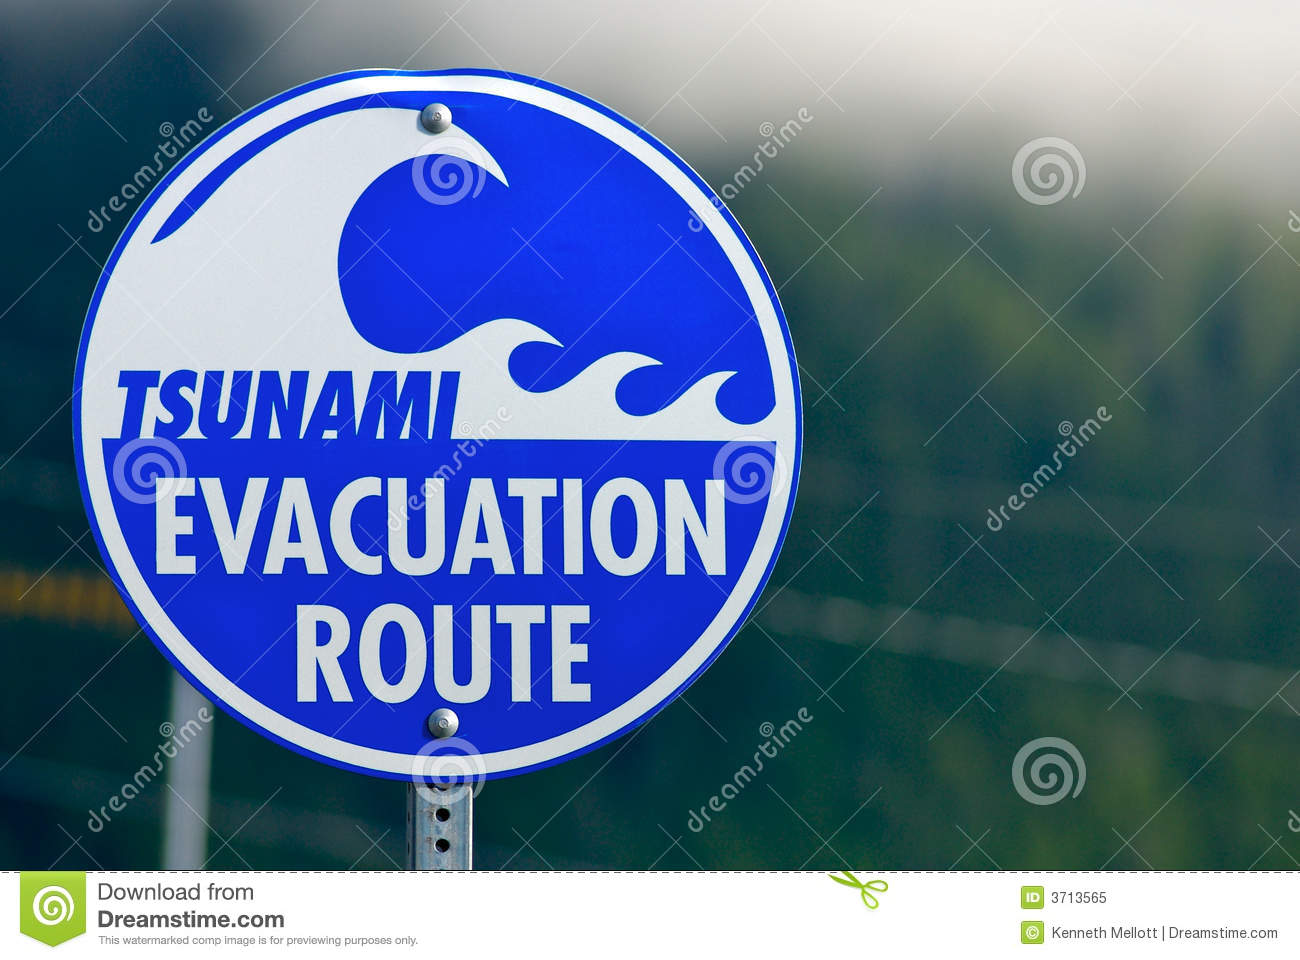 Tsunami Warning Evacuation Sign Stock Image - Image of debris